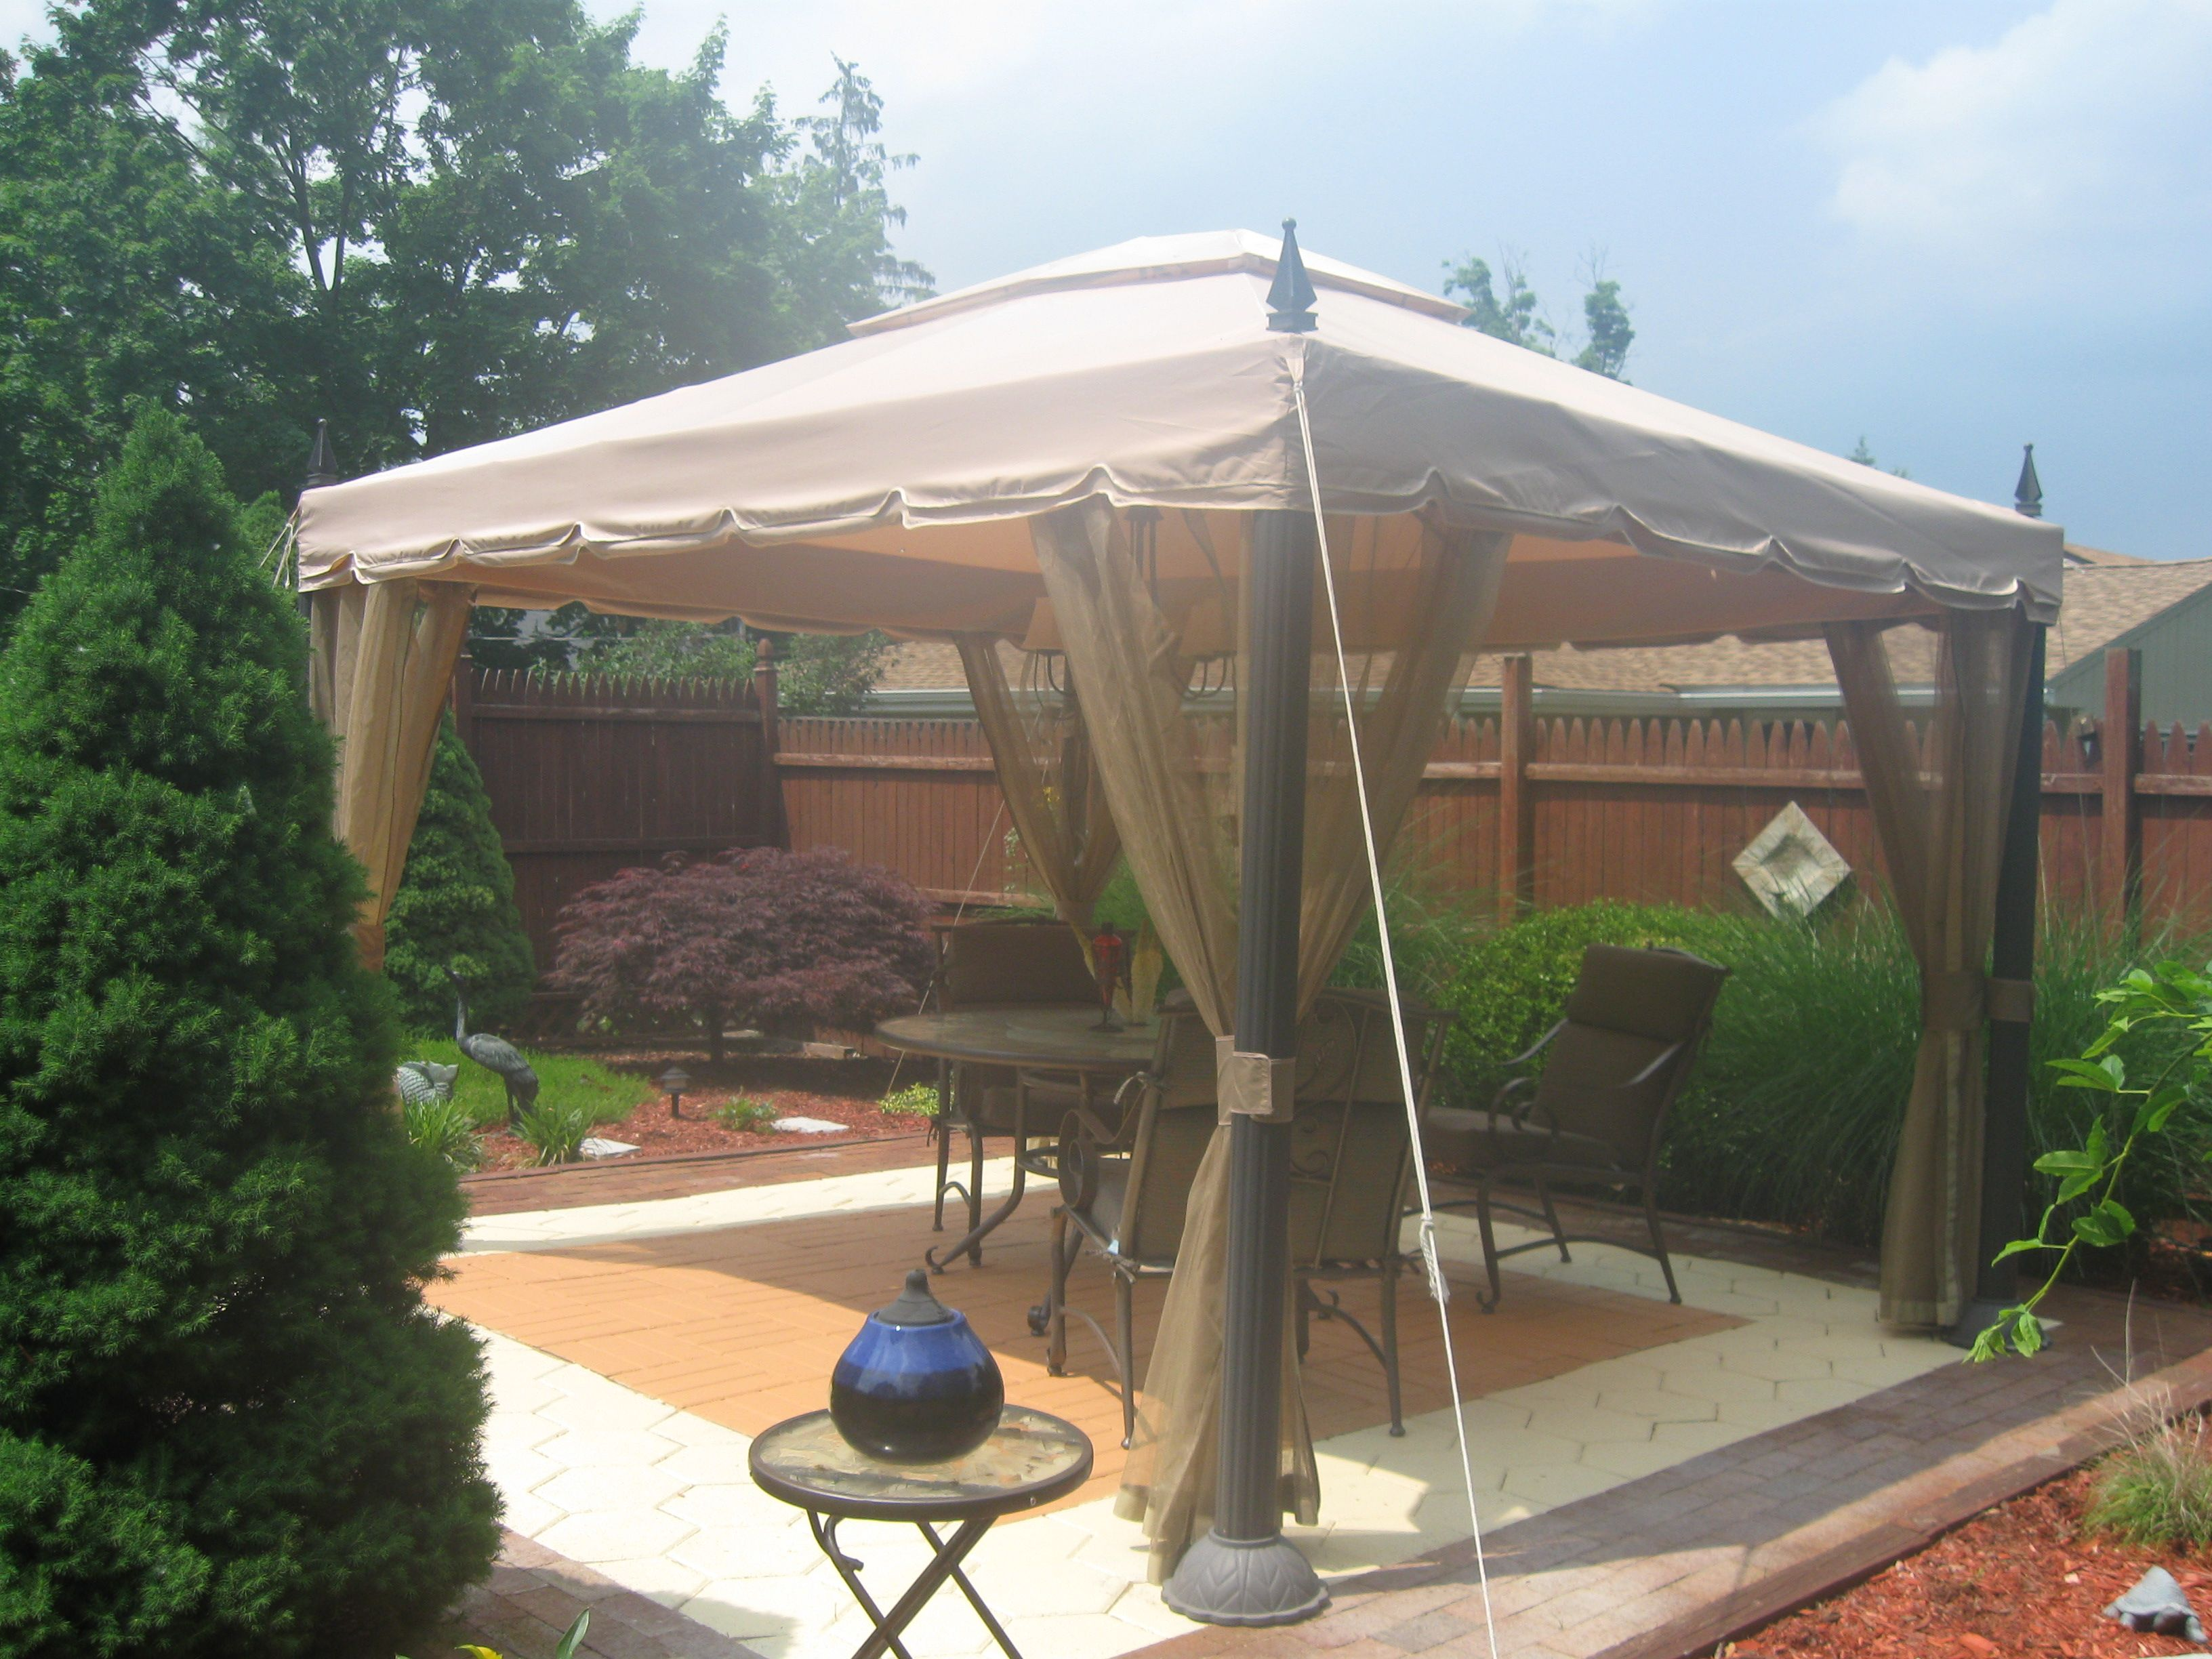 Pacific Casual 10 Ft X 12 Ft Mediterra Gazebo Replacement Canopy Garden Winds Kids Canopy Gazebo Replacement Canopy Fabric Canopy